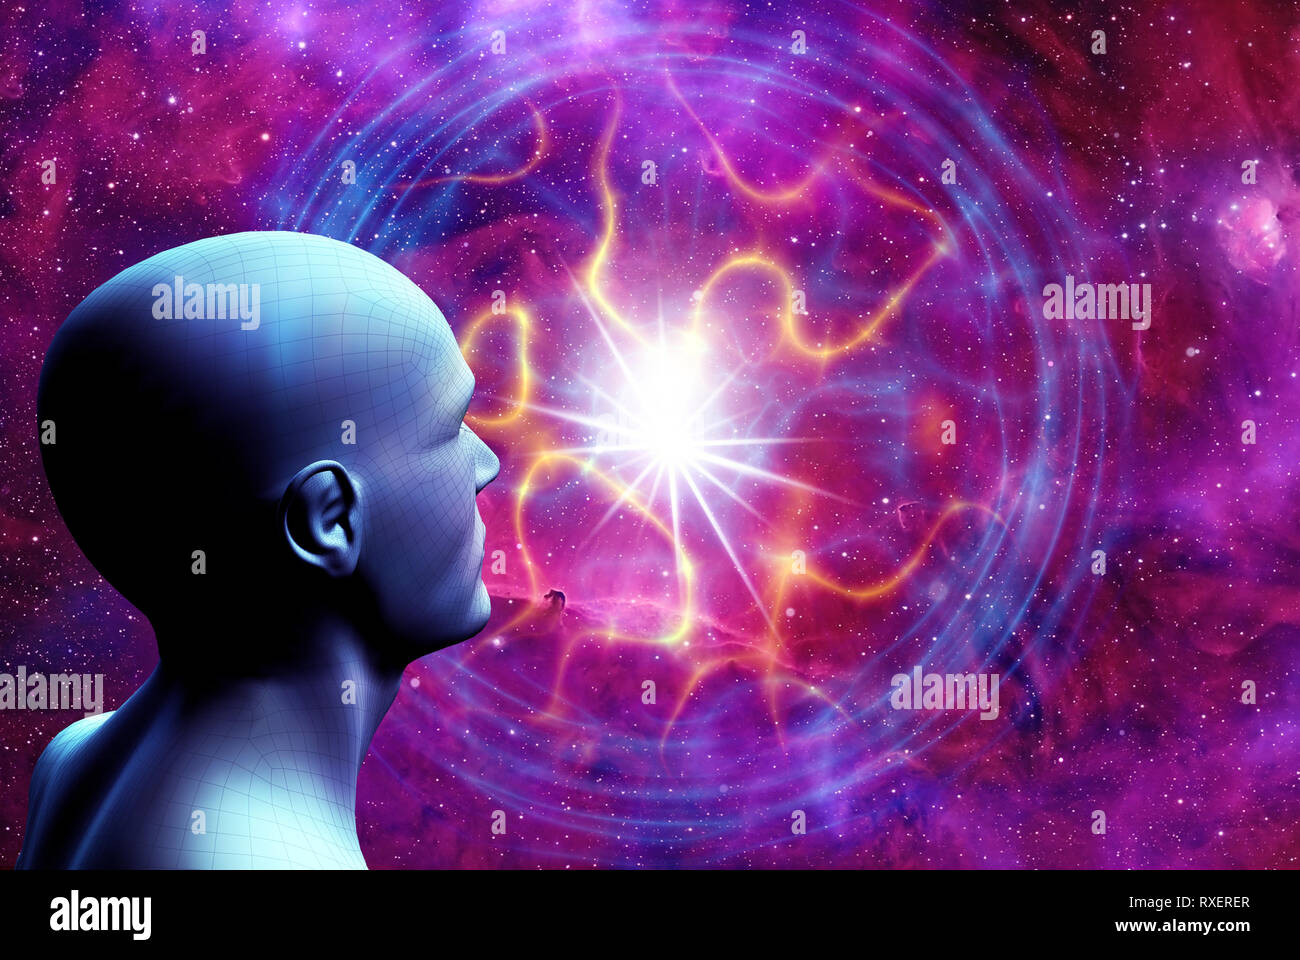 humanoid head and space with an energy ball, concept for future evolution of humankind - Stock Image